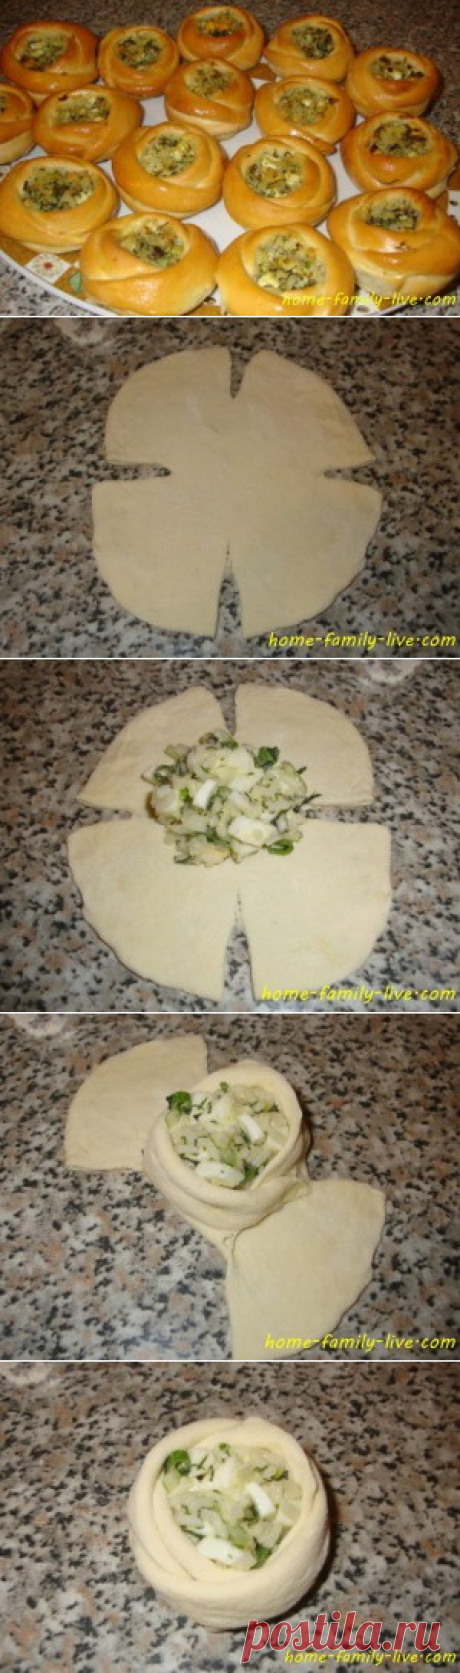 Molding of rolls with a stuffing